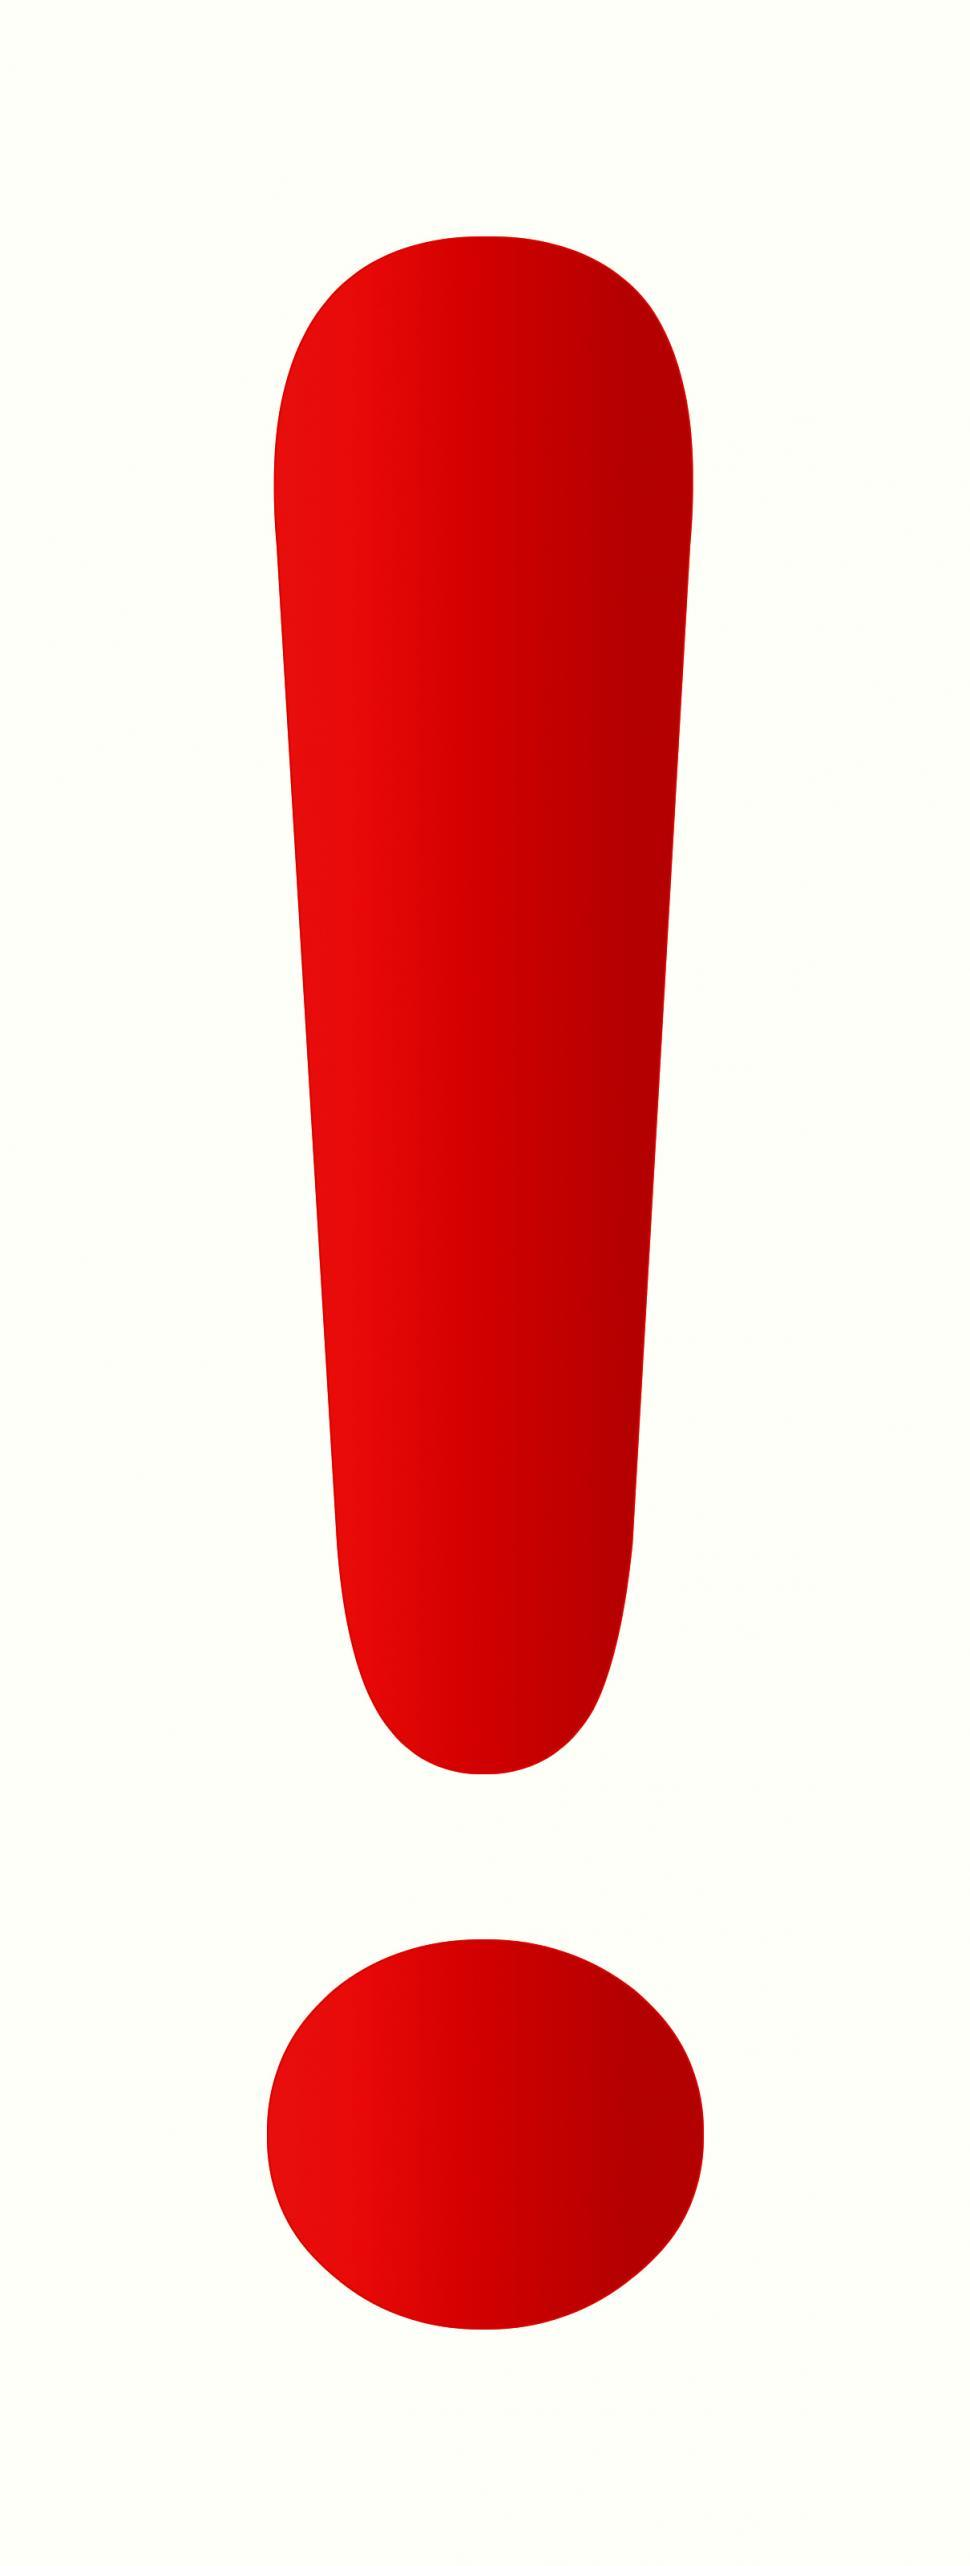 Download Free Stock Photo of Red Exclamation Mark